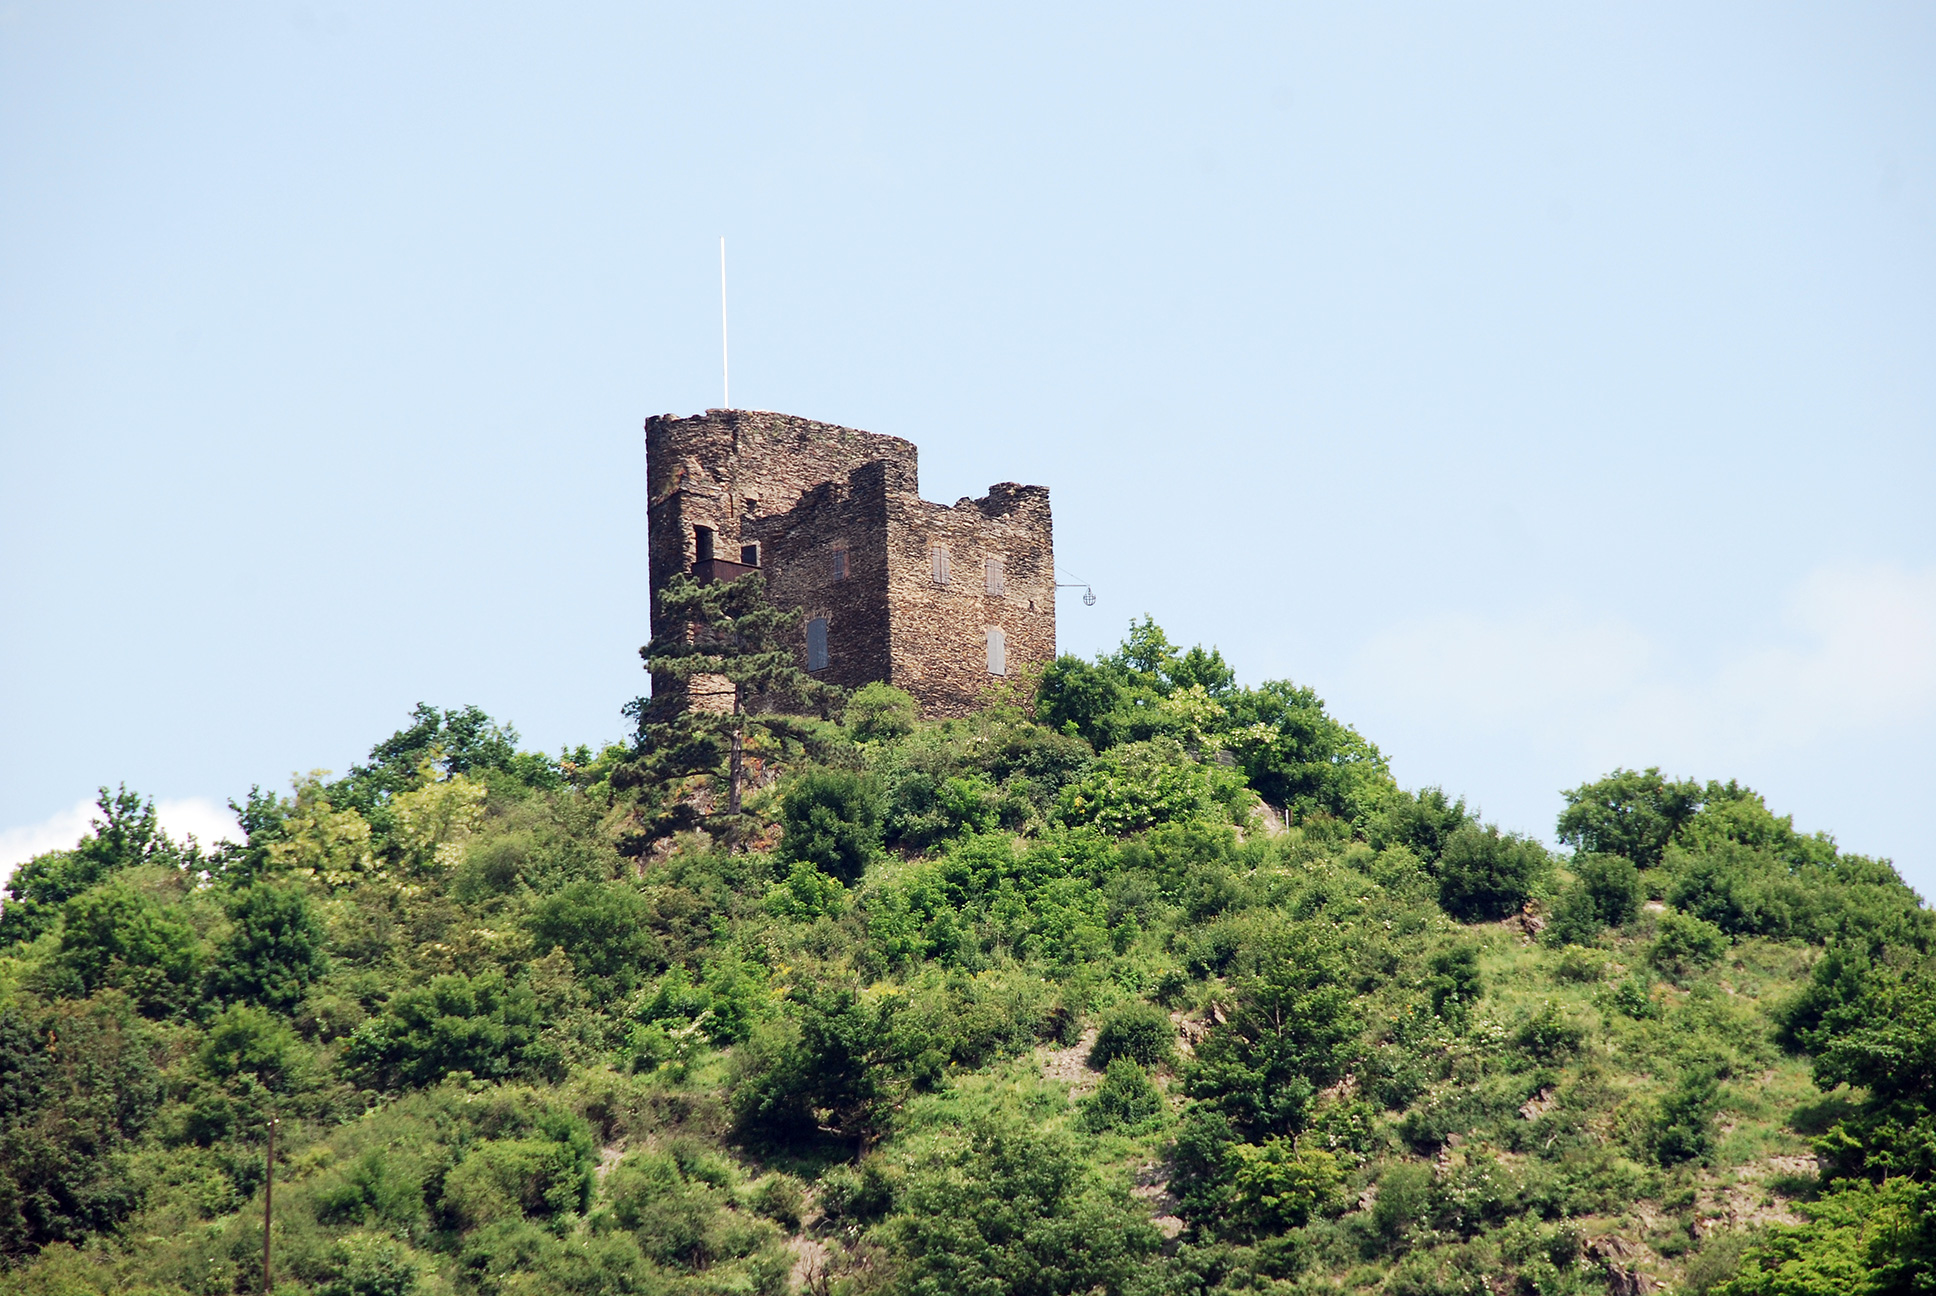 Great Castles - Gallery - Burg Nollig - Hessen Germany